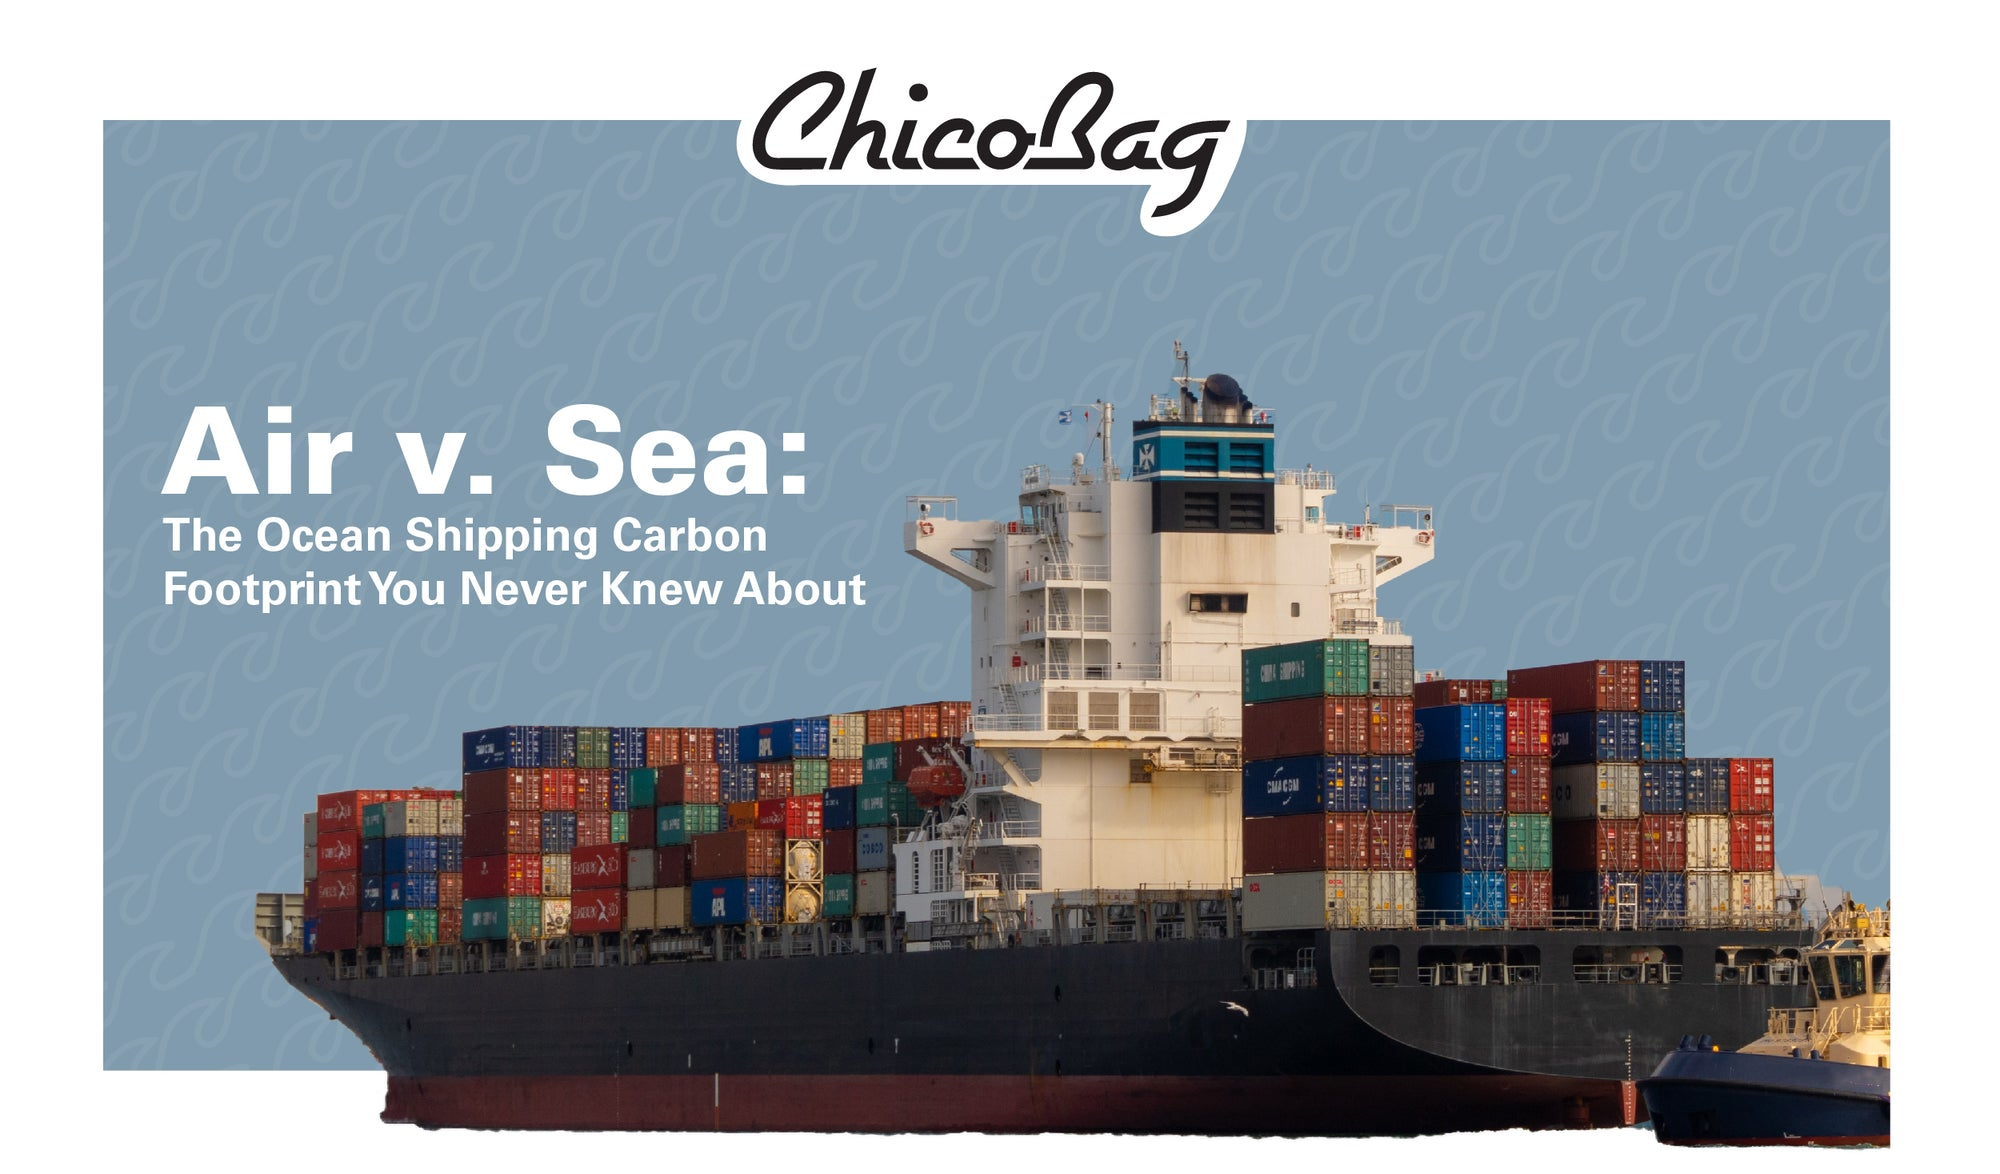 Air v. Sea: The Ocean Shipping Carbon Footprint You Never Knew About